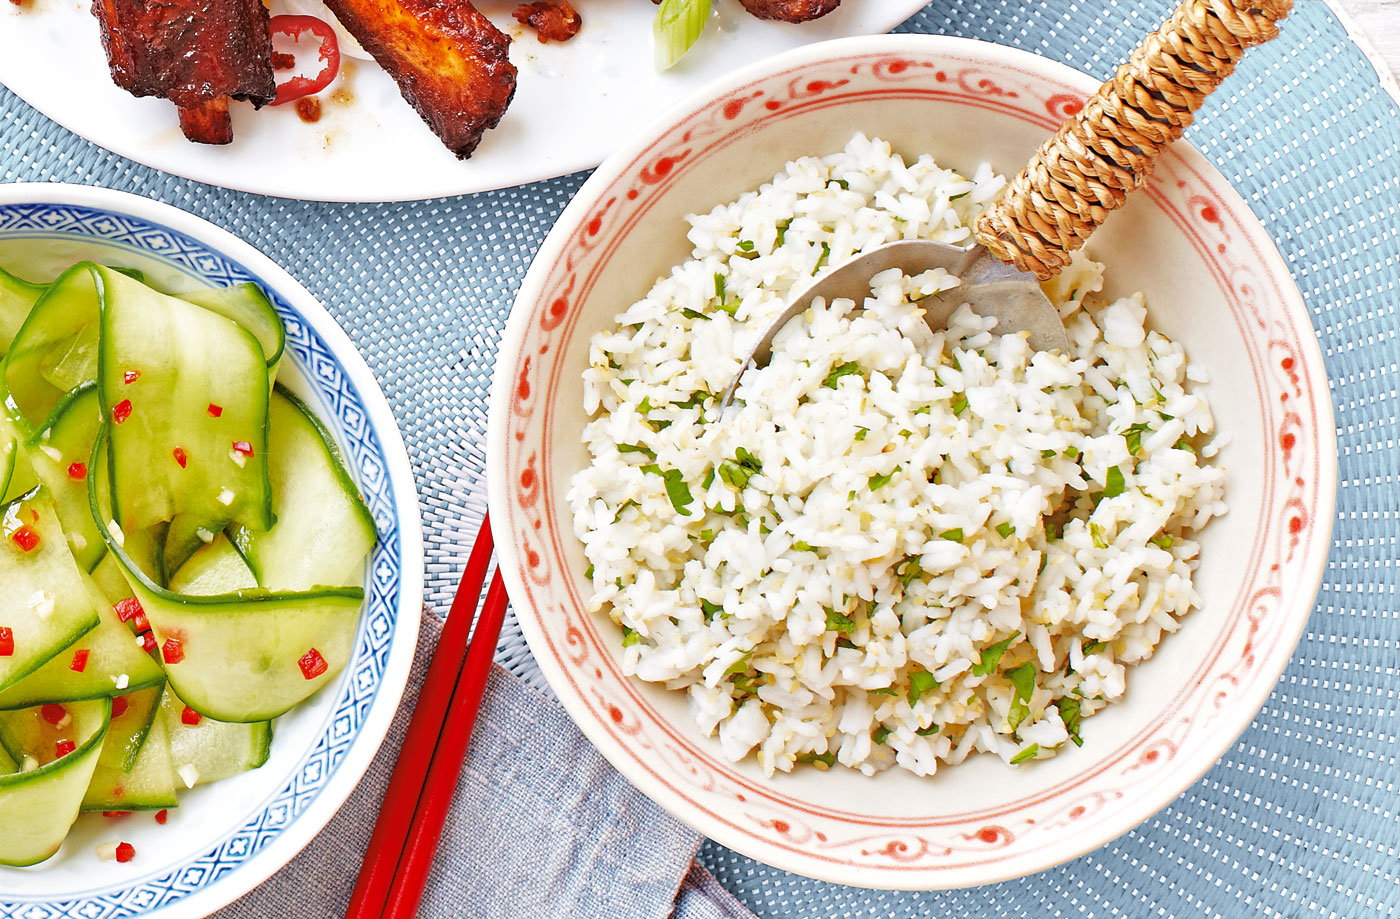 Steamed rice with toasted sesame seeds and coriander